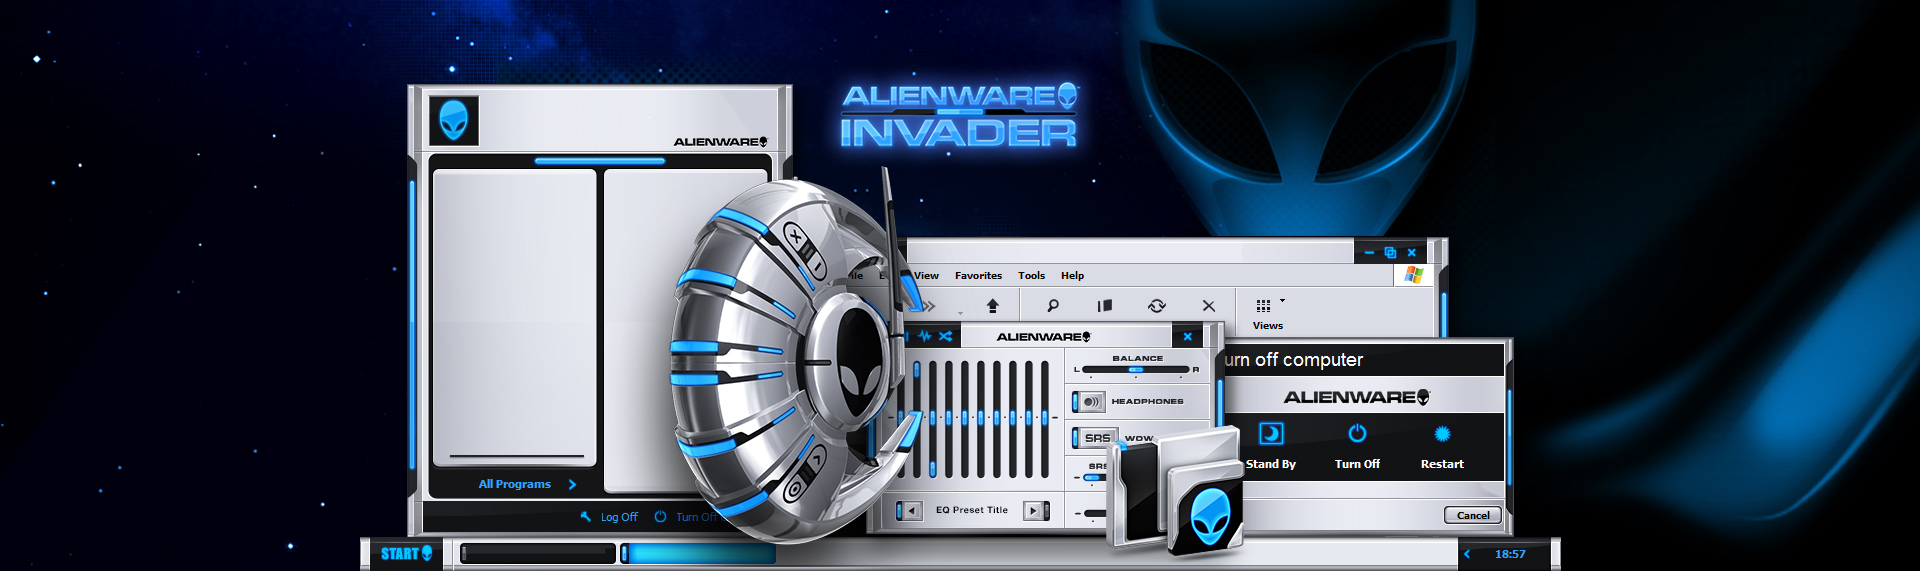 Alienware Invader  Client: Alienware Corporation  The Skins Factory once again raised the bar on complete desktop skinning and User Interface design with our 7th and final theme for Alienware Corporation. Featuring a complete desktop suite that covers the Windows theme, desktop icons, custom wallpaper and the most dynamic, animated, otherworldly Windows Media Player skin in the galaxy. You have to see it to believe it. Copyright. Alienware Corporation. All Rights Reserved.